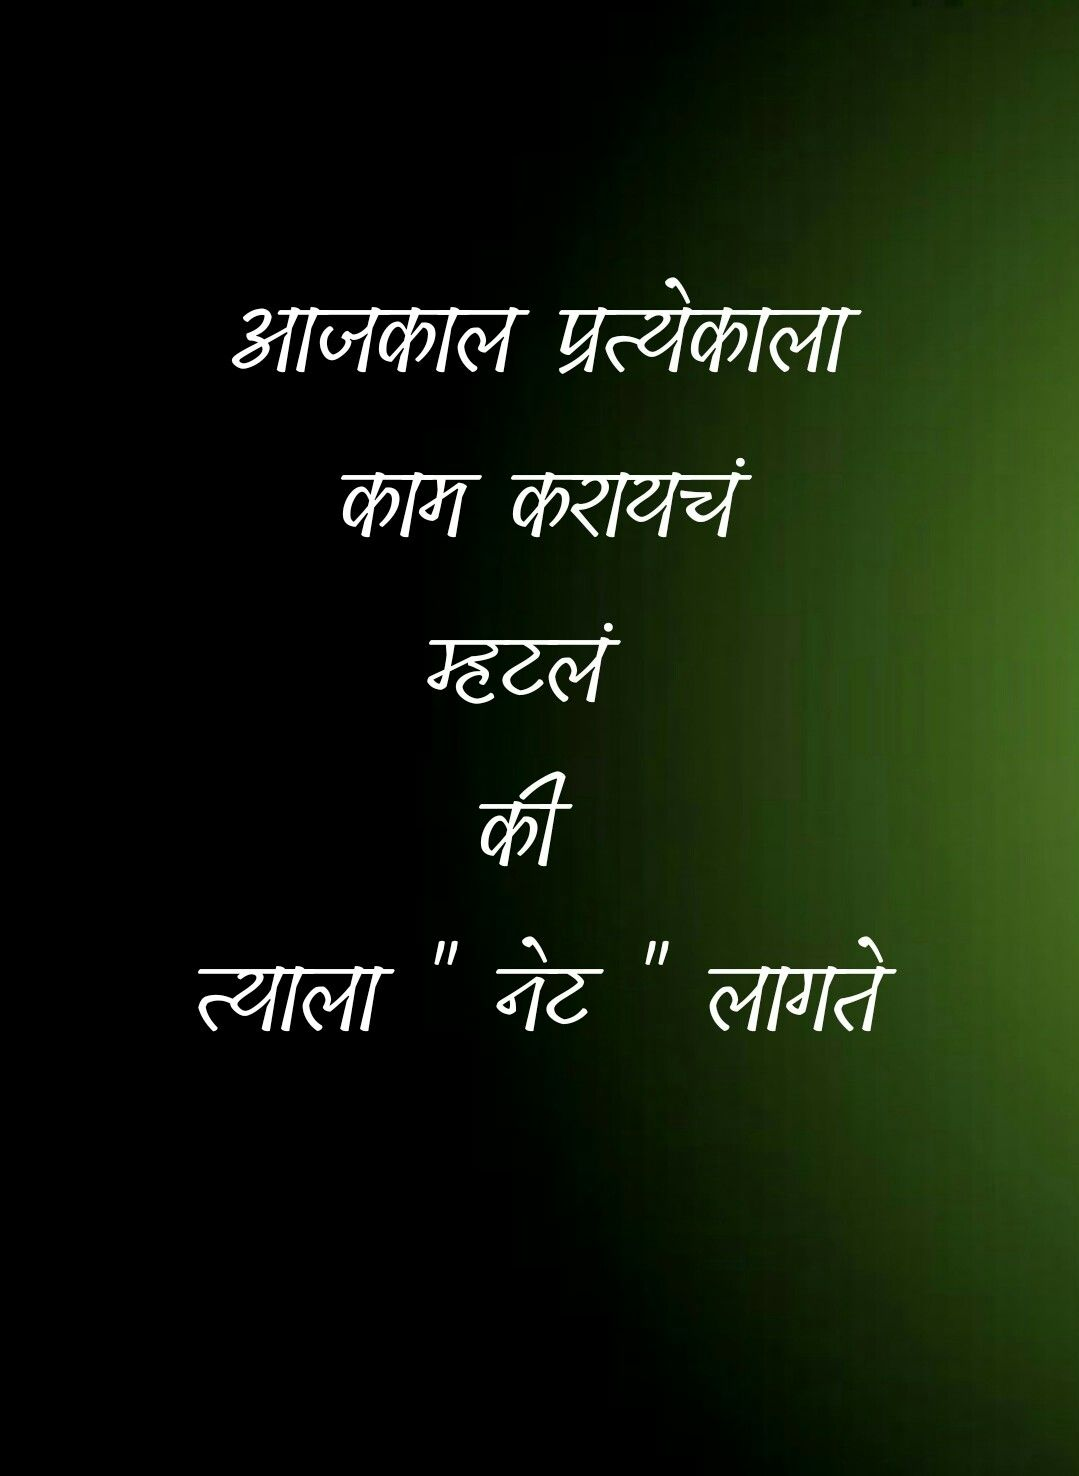 Pin By Bhushan On Marathi Grafity Life Quotes Funny Quotes Funny Picture Quotes